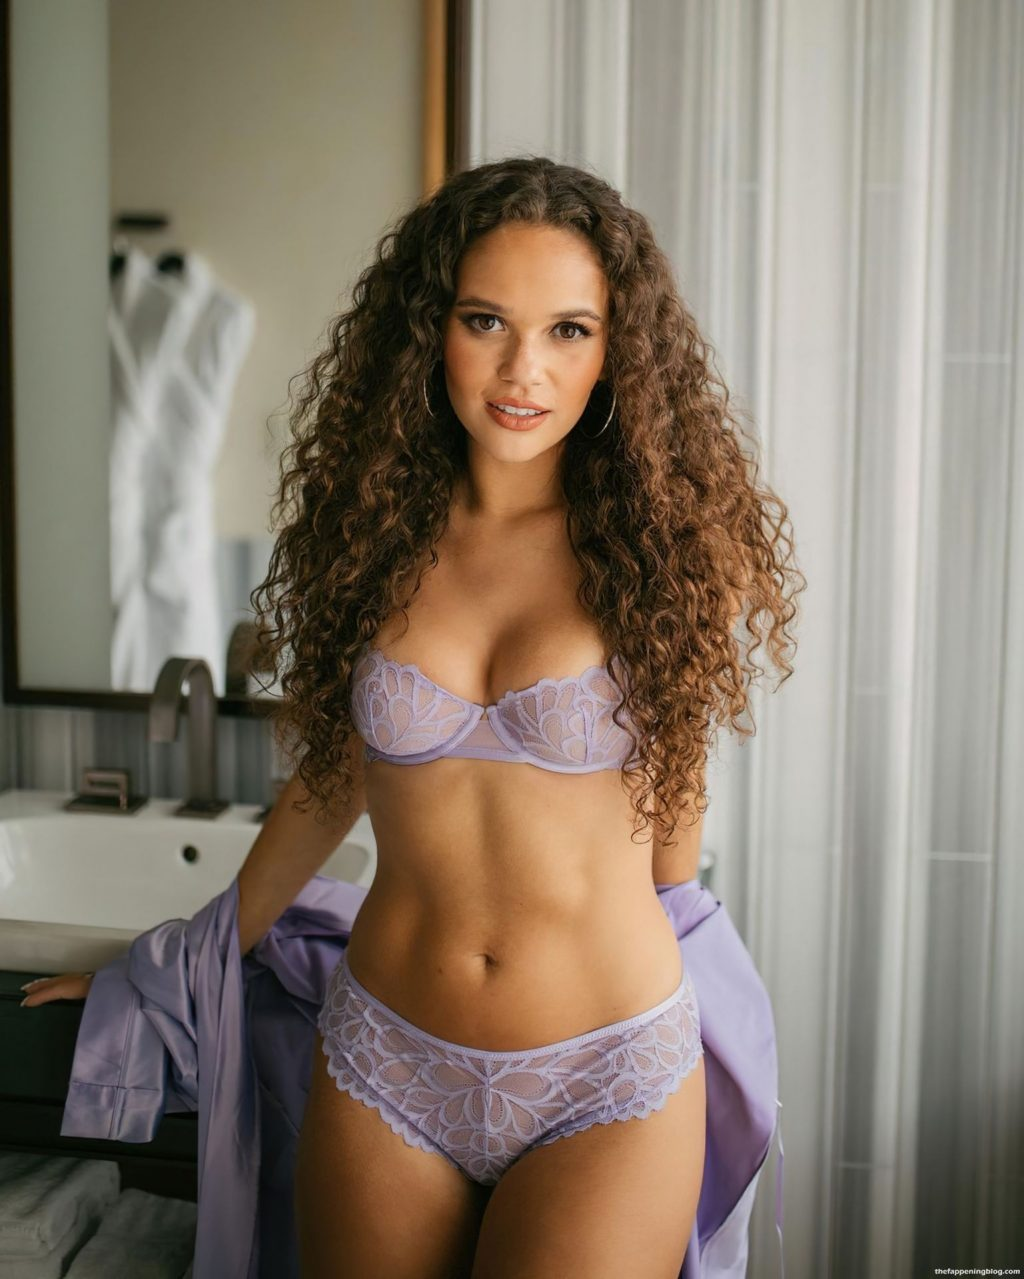 Madison Pettis Looks Hot in New Lingerie (5 Photos)